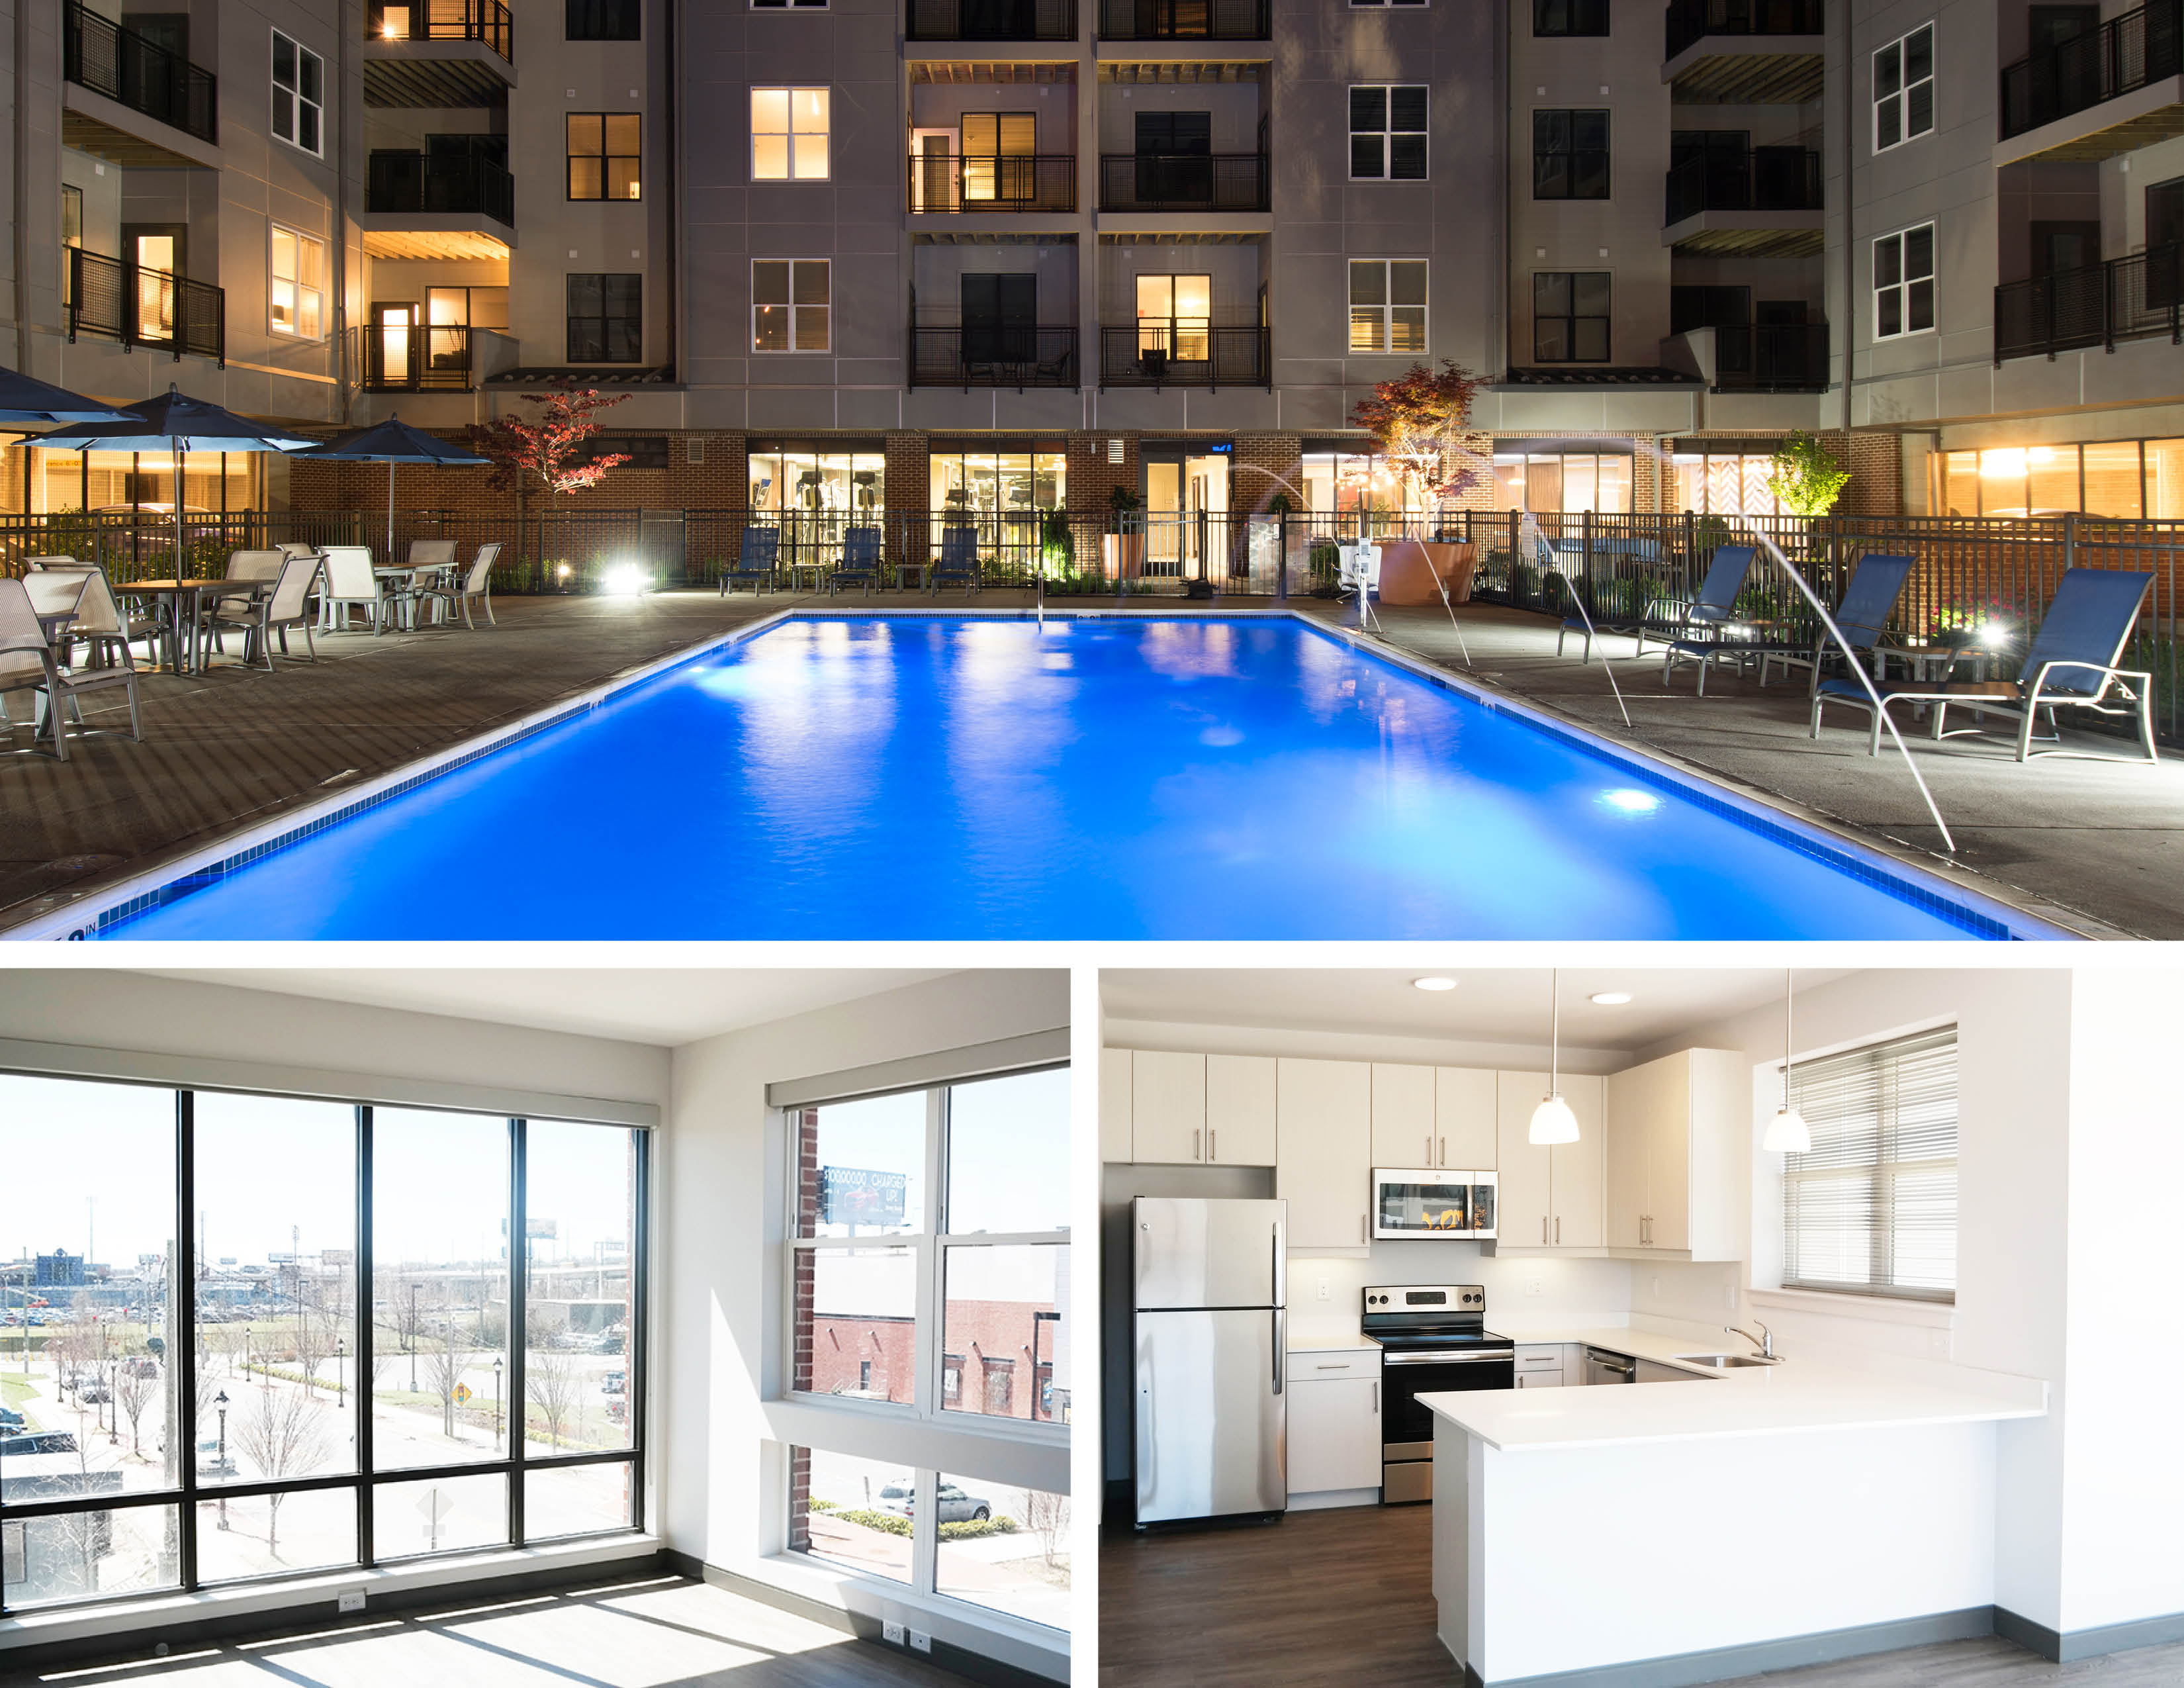 The Next Phase of Harlan Flat's Brand New Riverfront Apartments are Now Open!